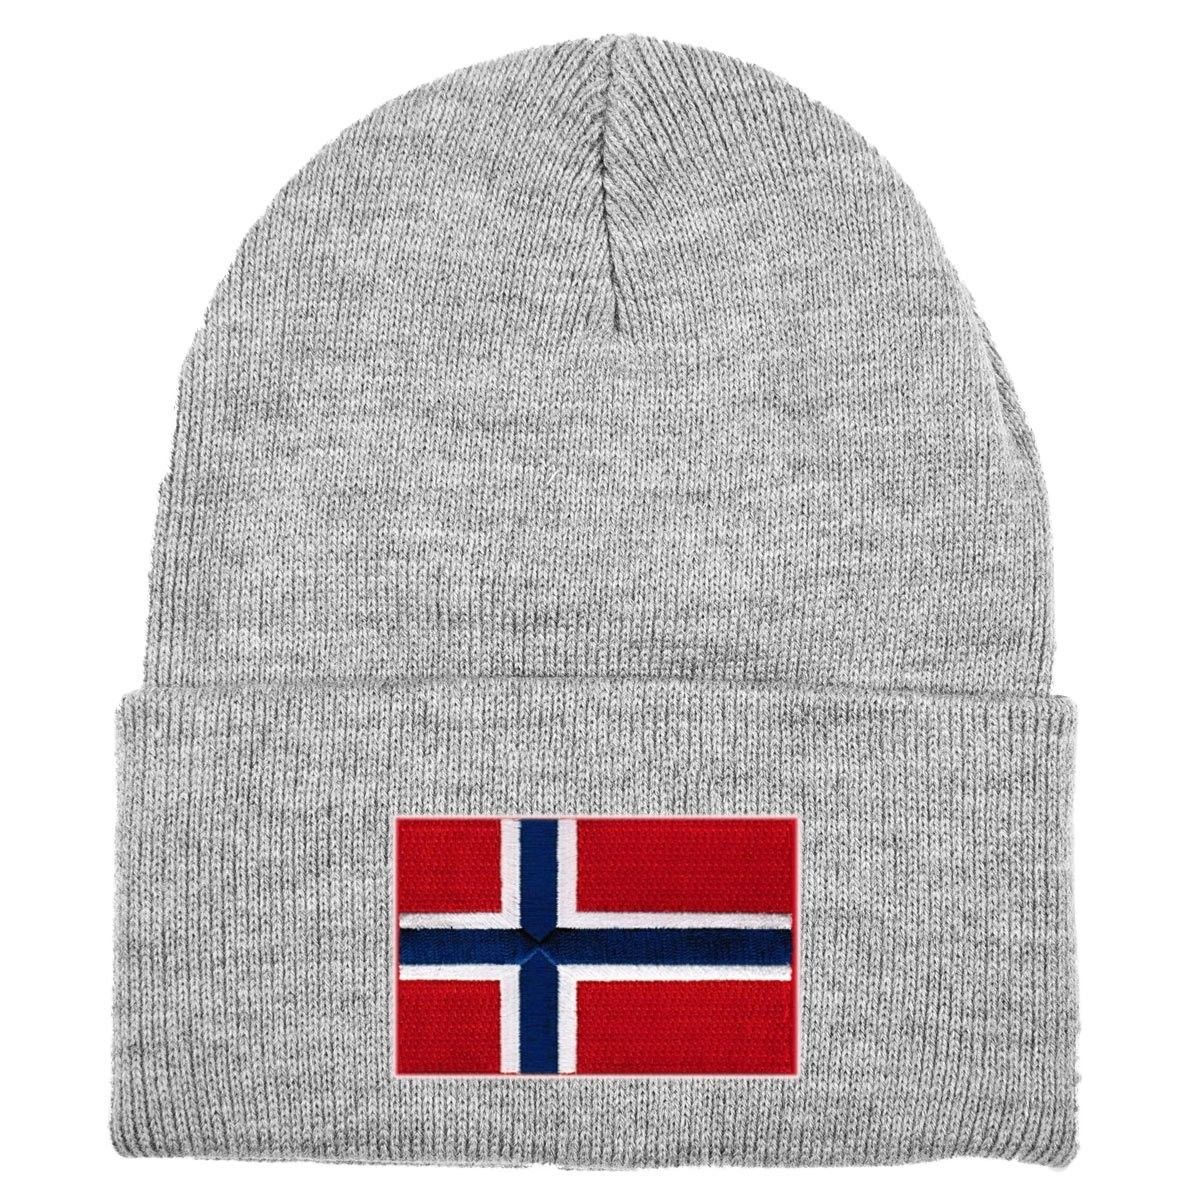 b2ecbc1ac78 Norway MyCountry Solid Knit Hat (Sport Gray) - C911J9OWWVZ